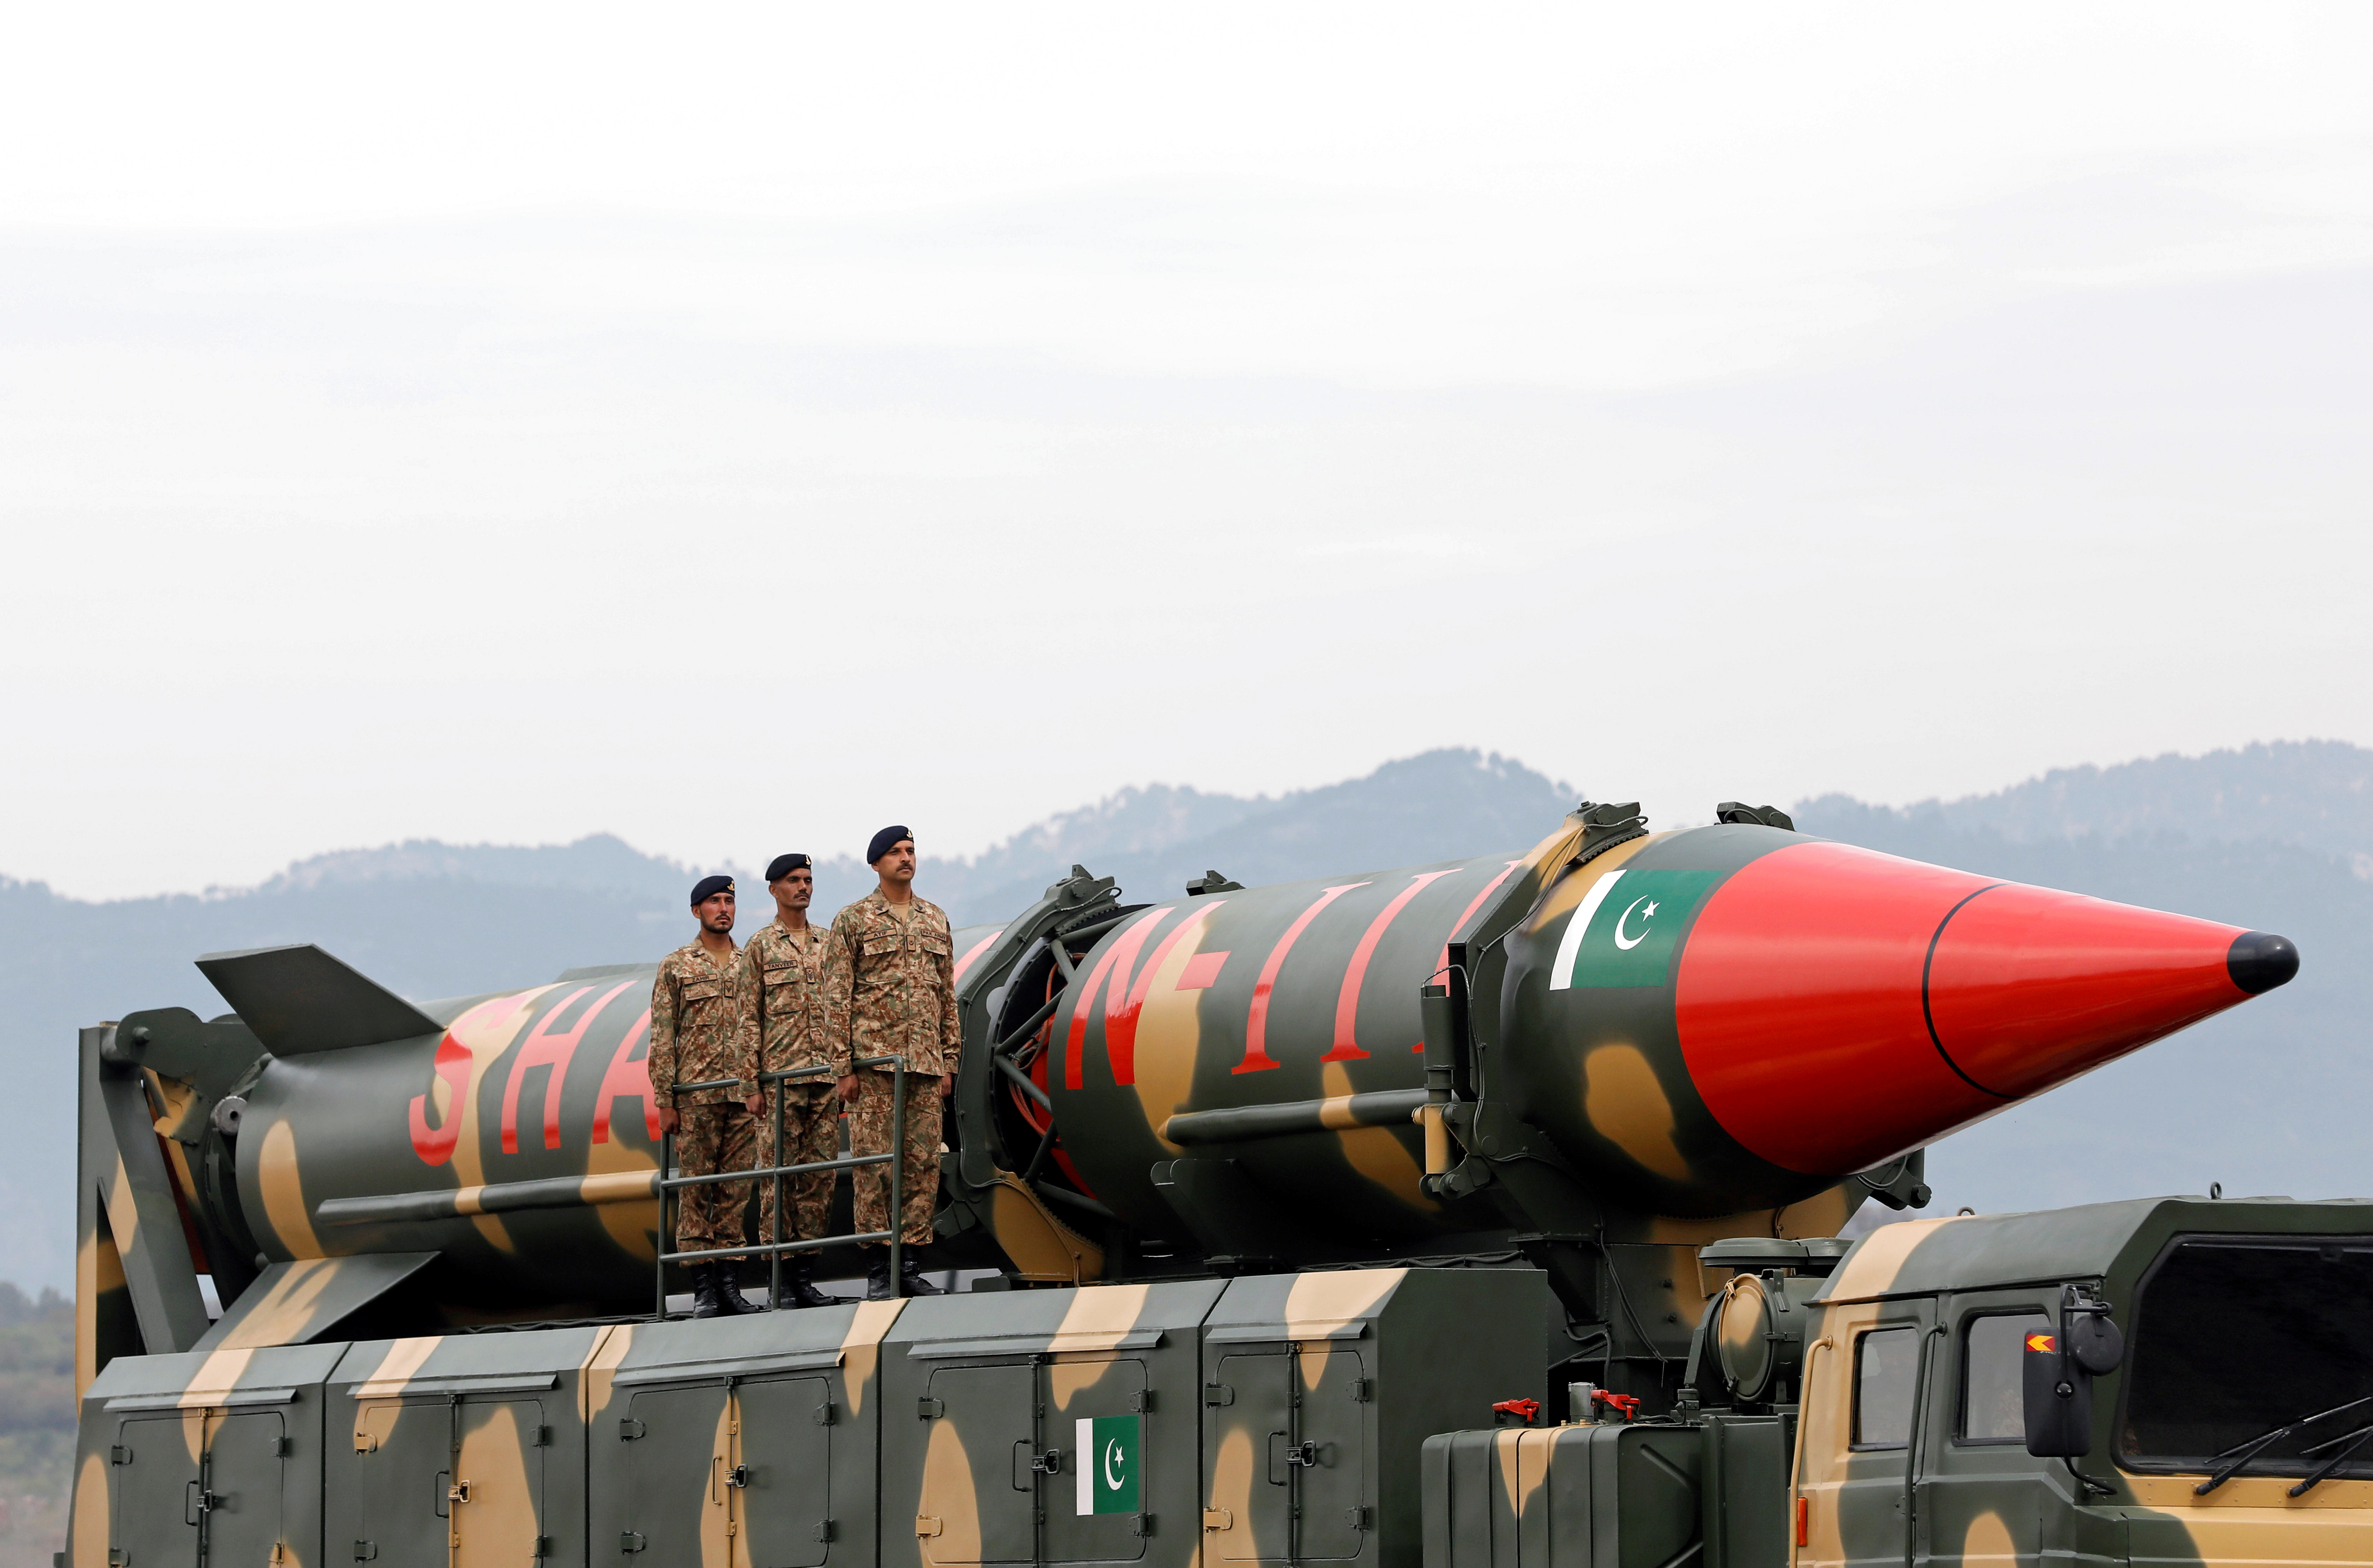 Pakistani military personnel stand beside a Shaheen III surface-to-surface ballistic missile during Pakistan Day military parade in Islamabad, Pakistan, March 23, 2019.